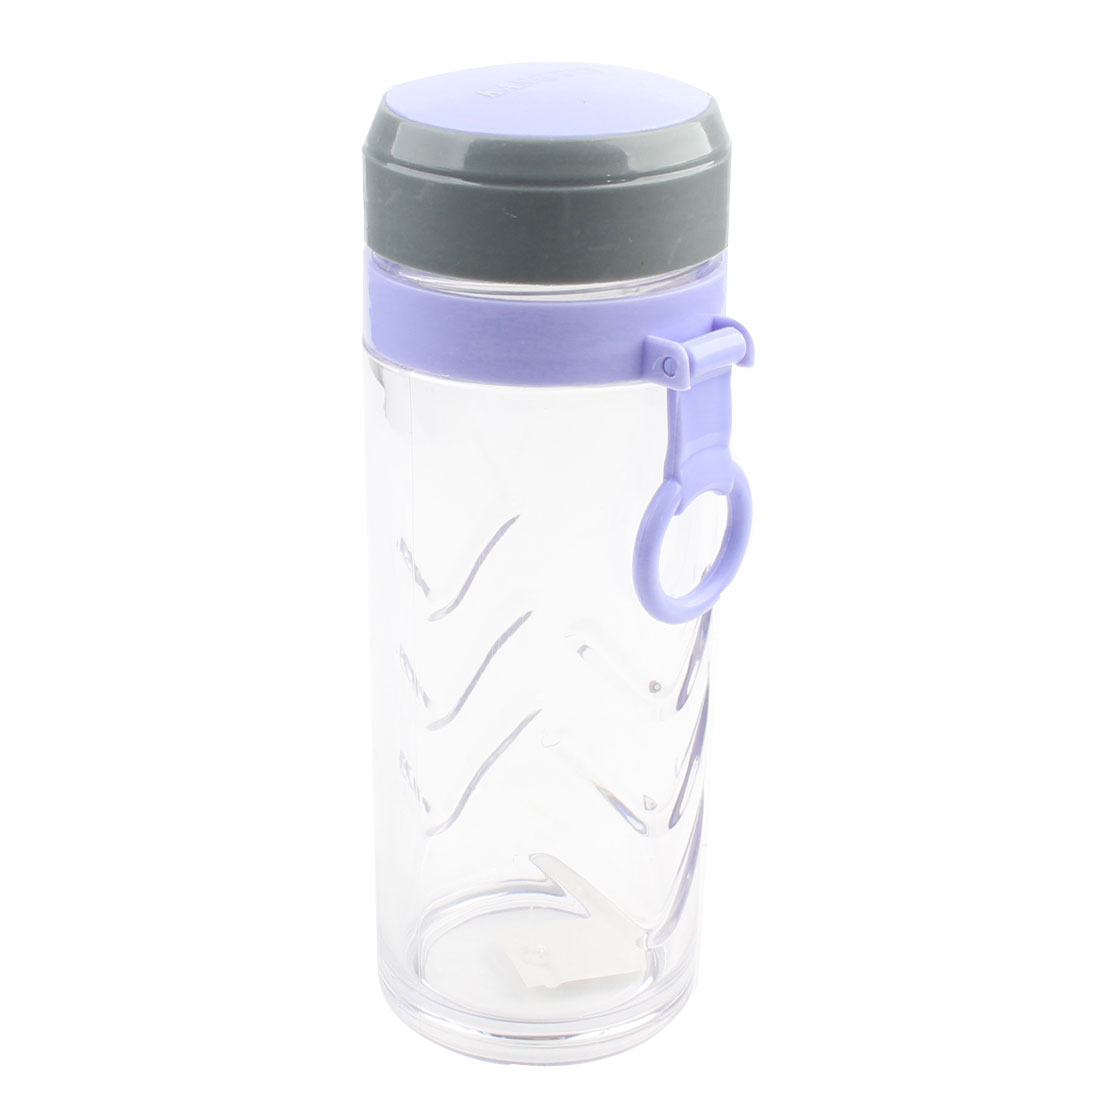 Home Office 600ml Capacity Slateblue Clear Water Drink Bottle Cup w Hand Ring